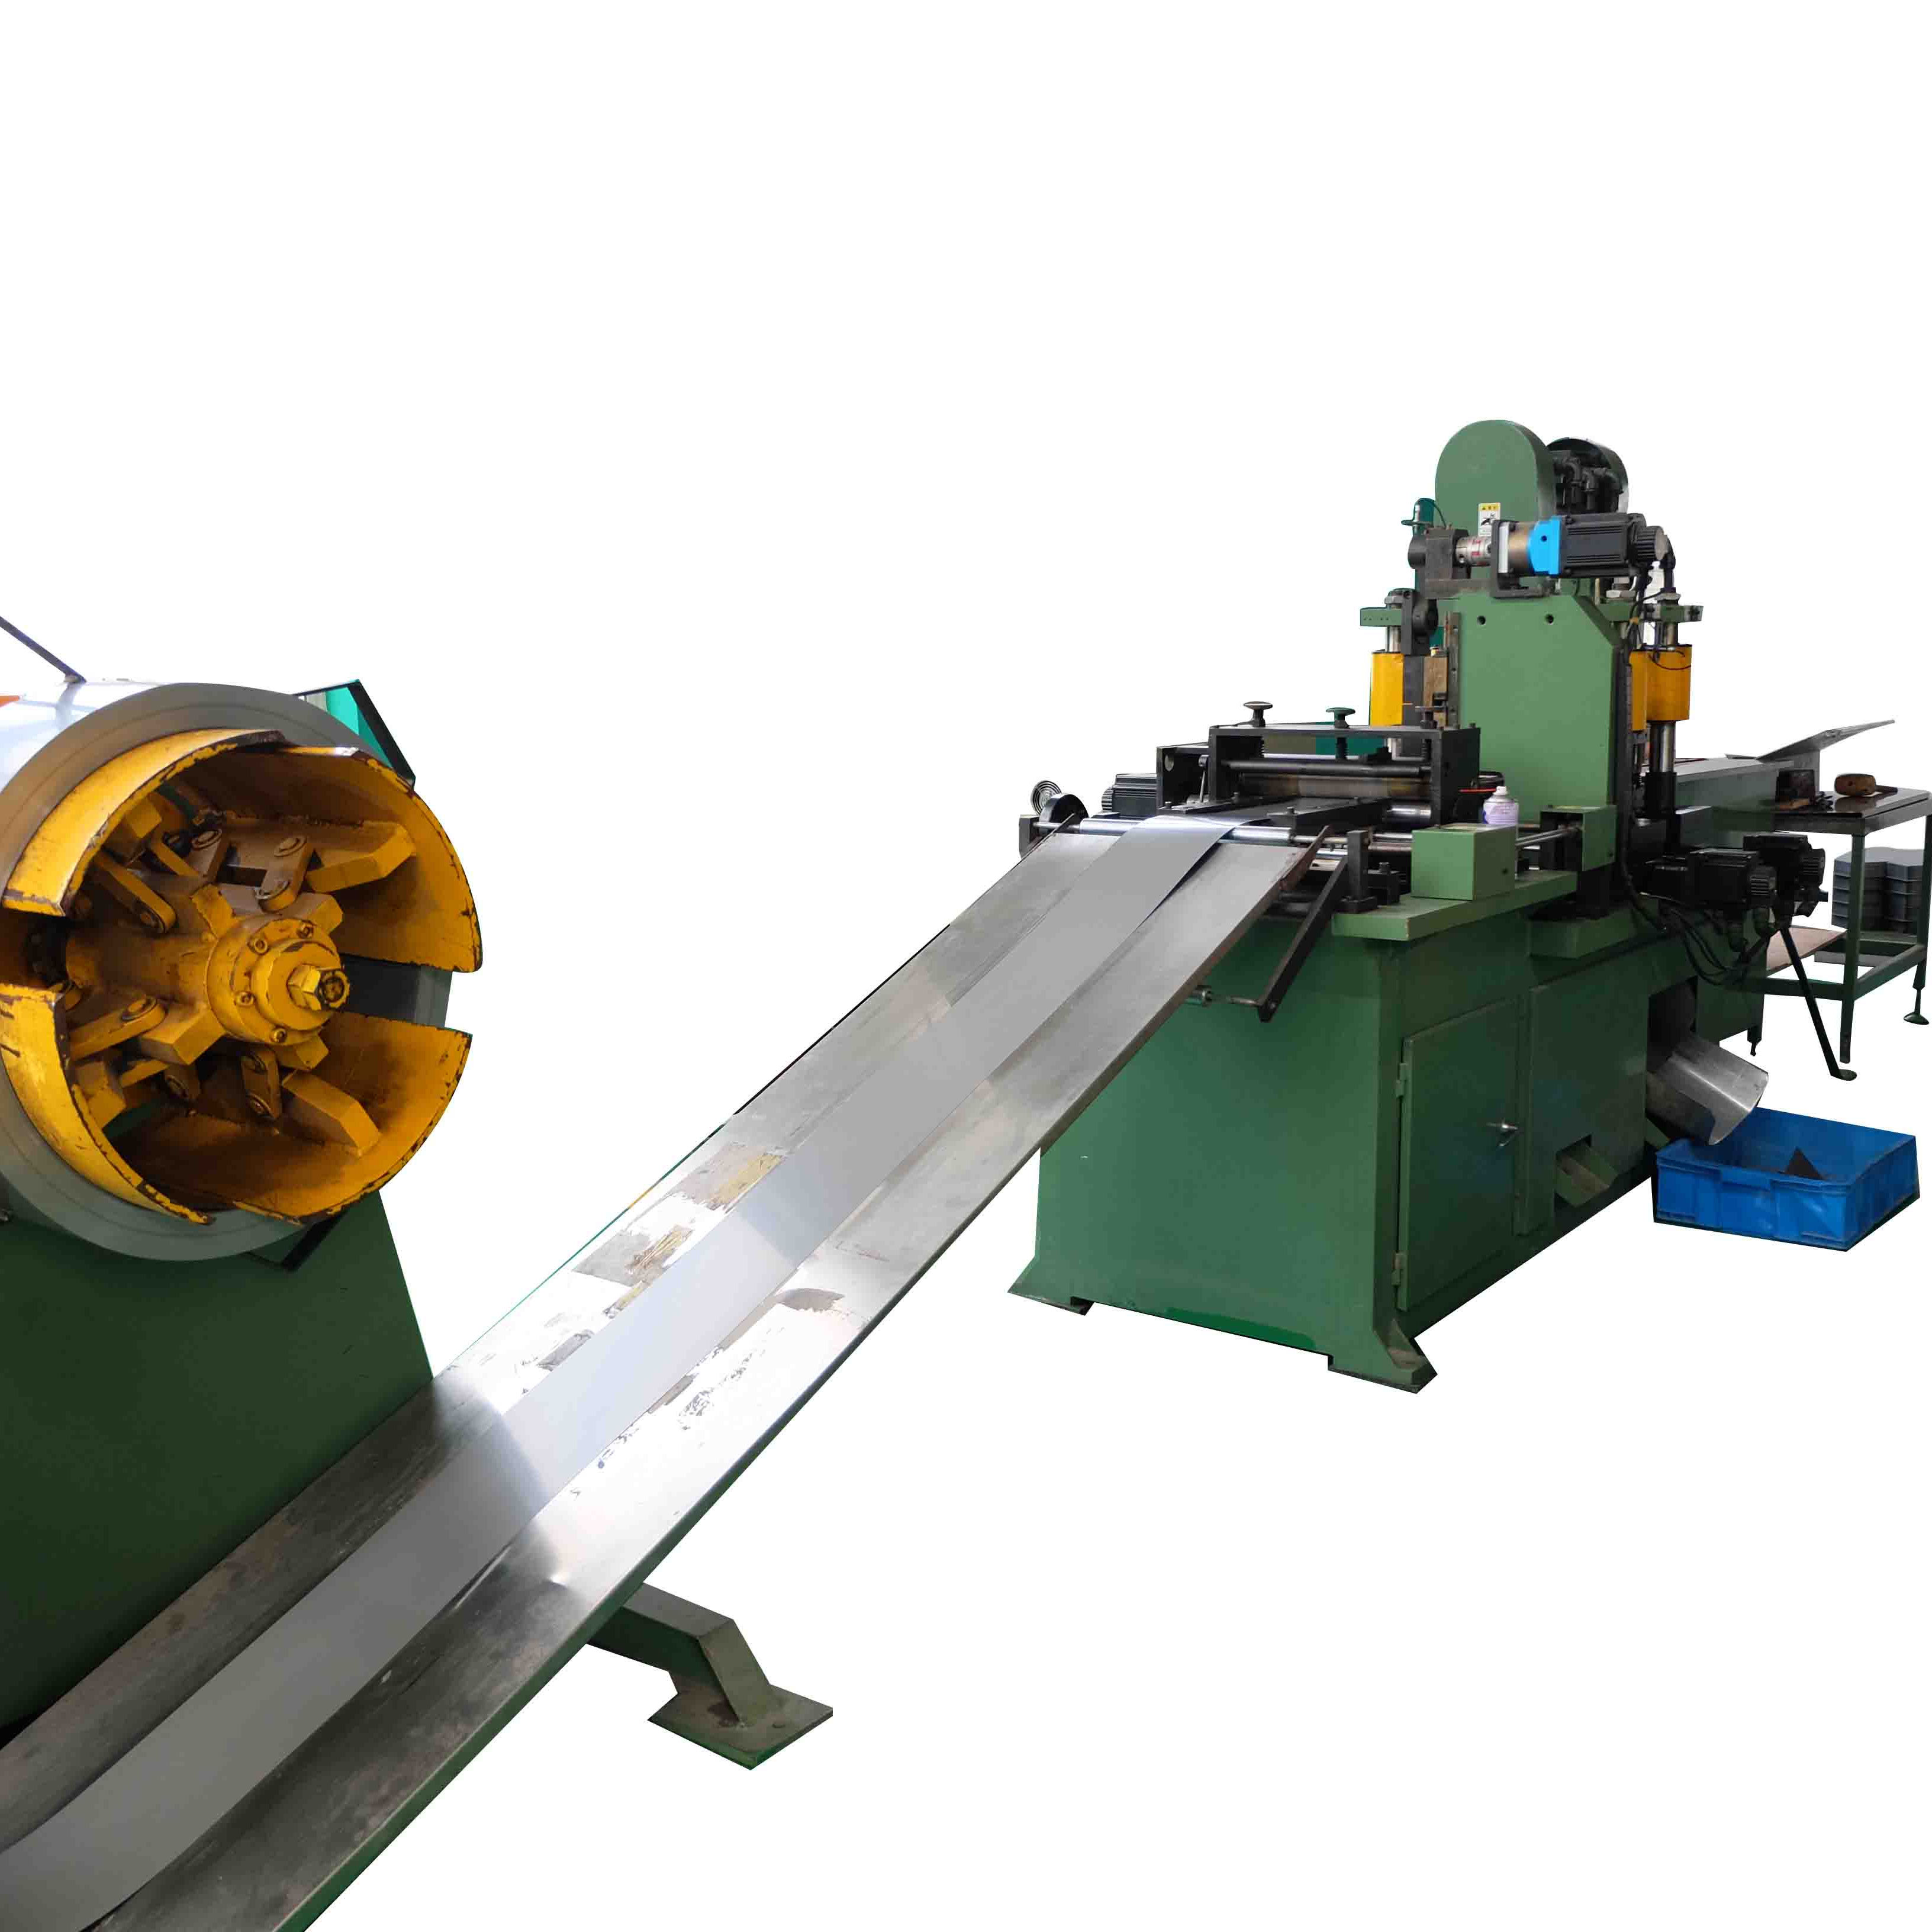 XE400 Automatic Reactor Core Cutting Line